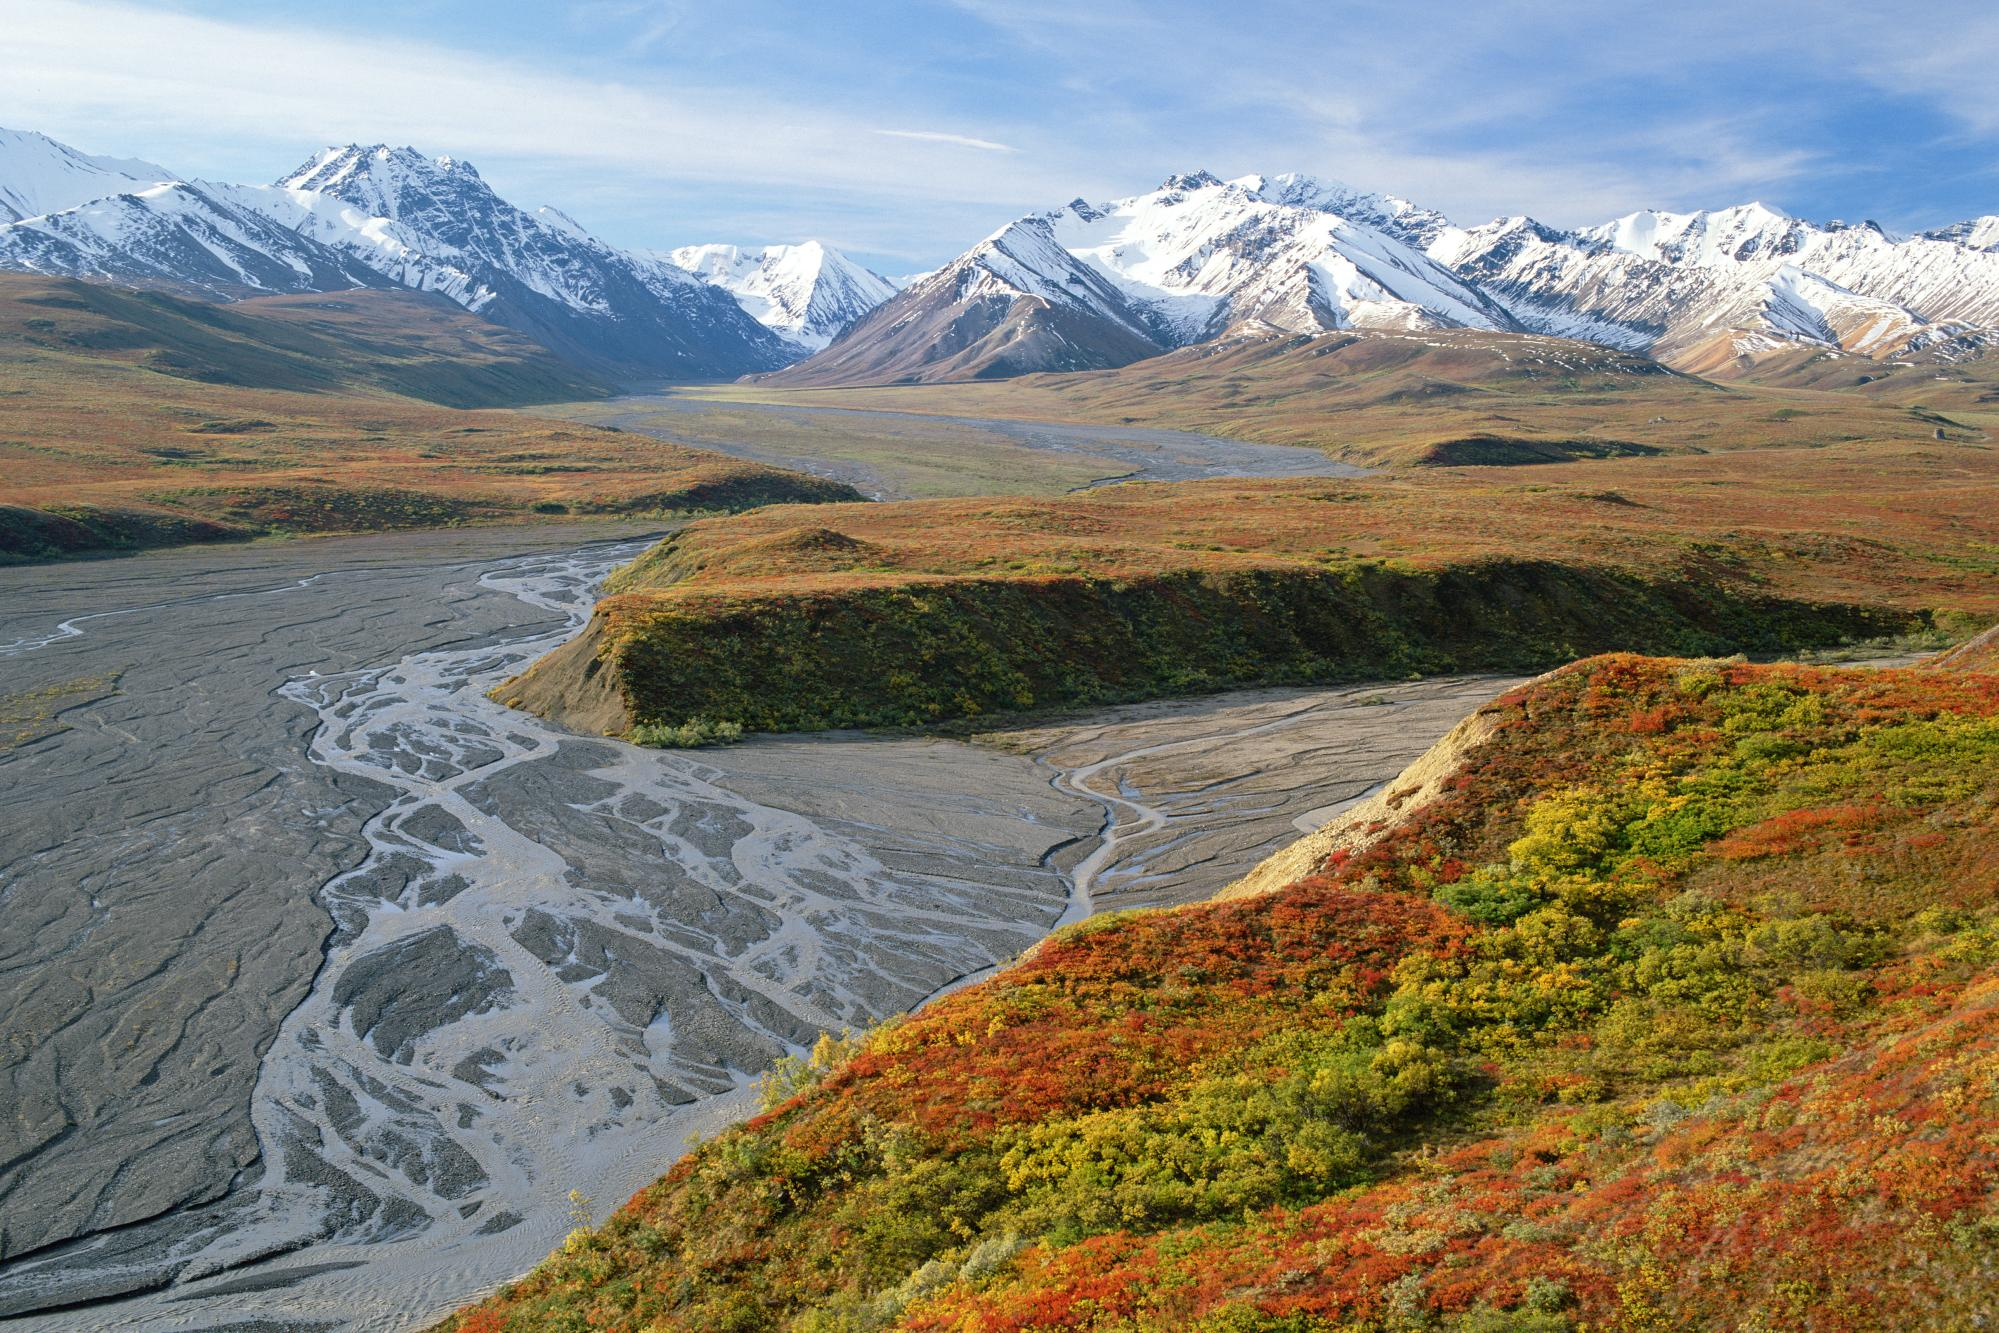 EAST FORK RIVER DENALI 1999 x 1333